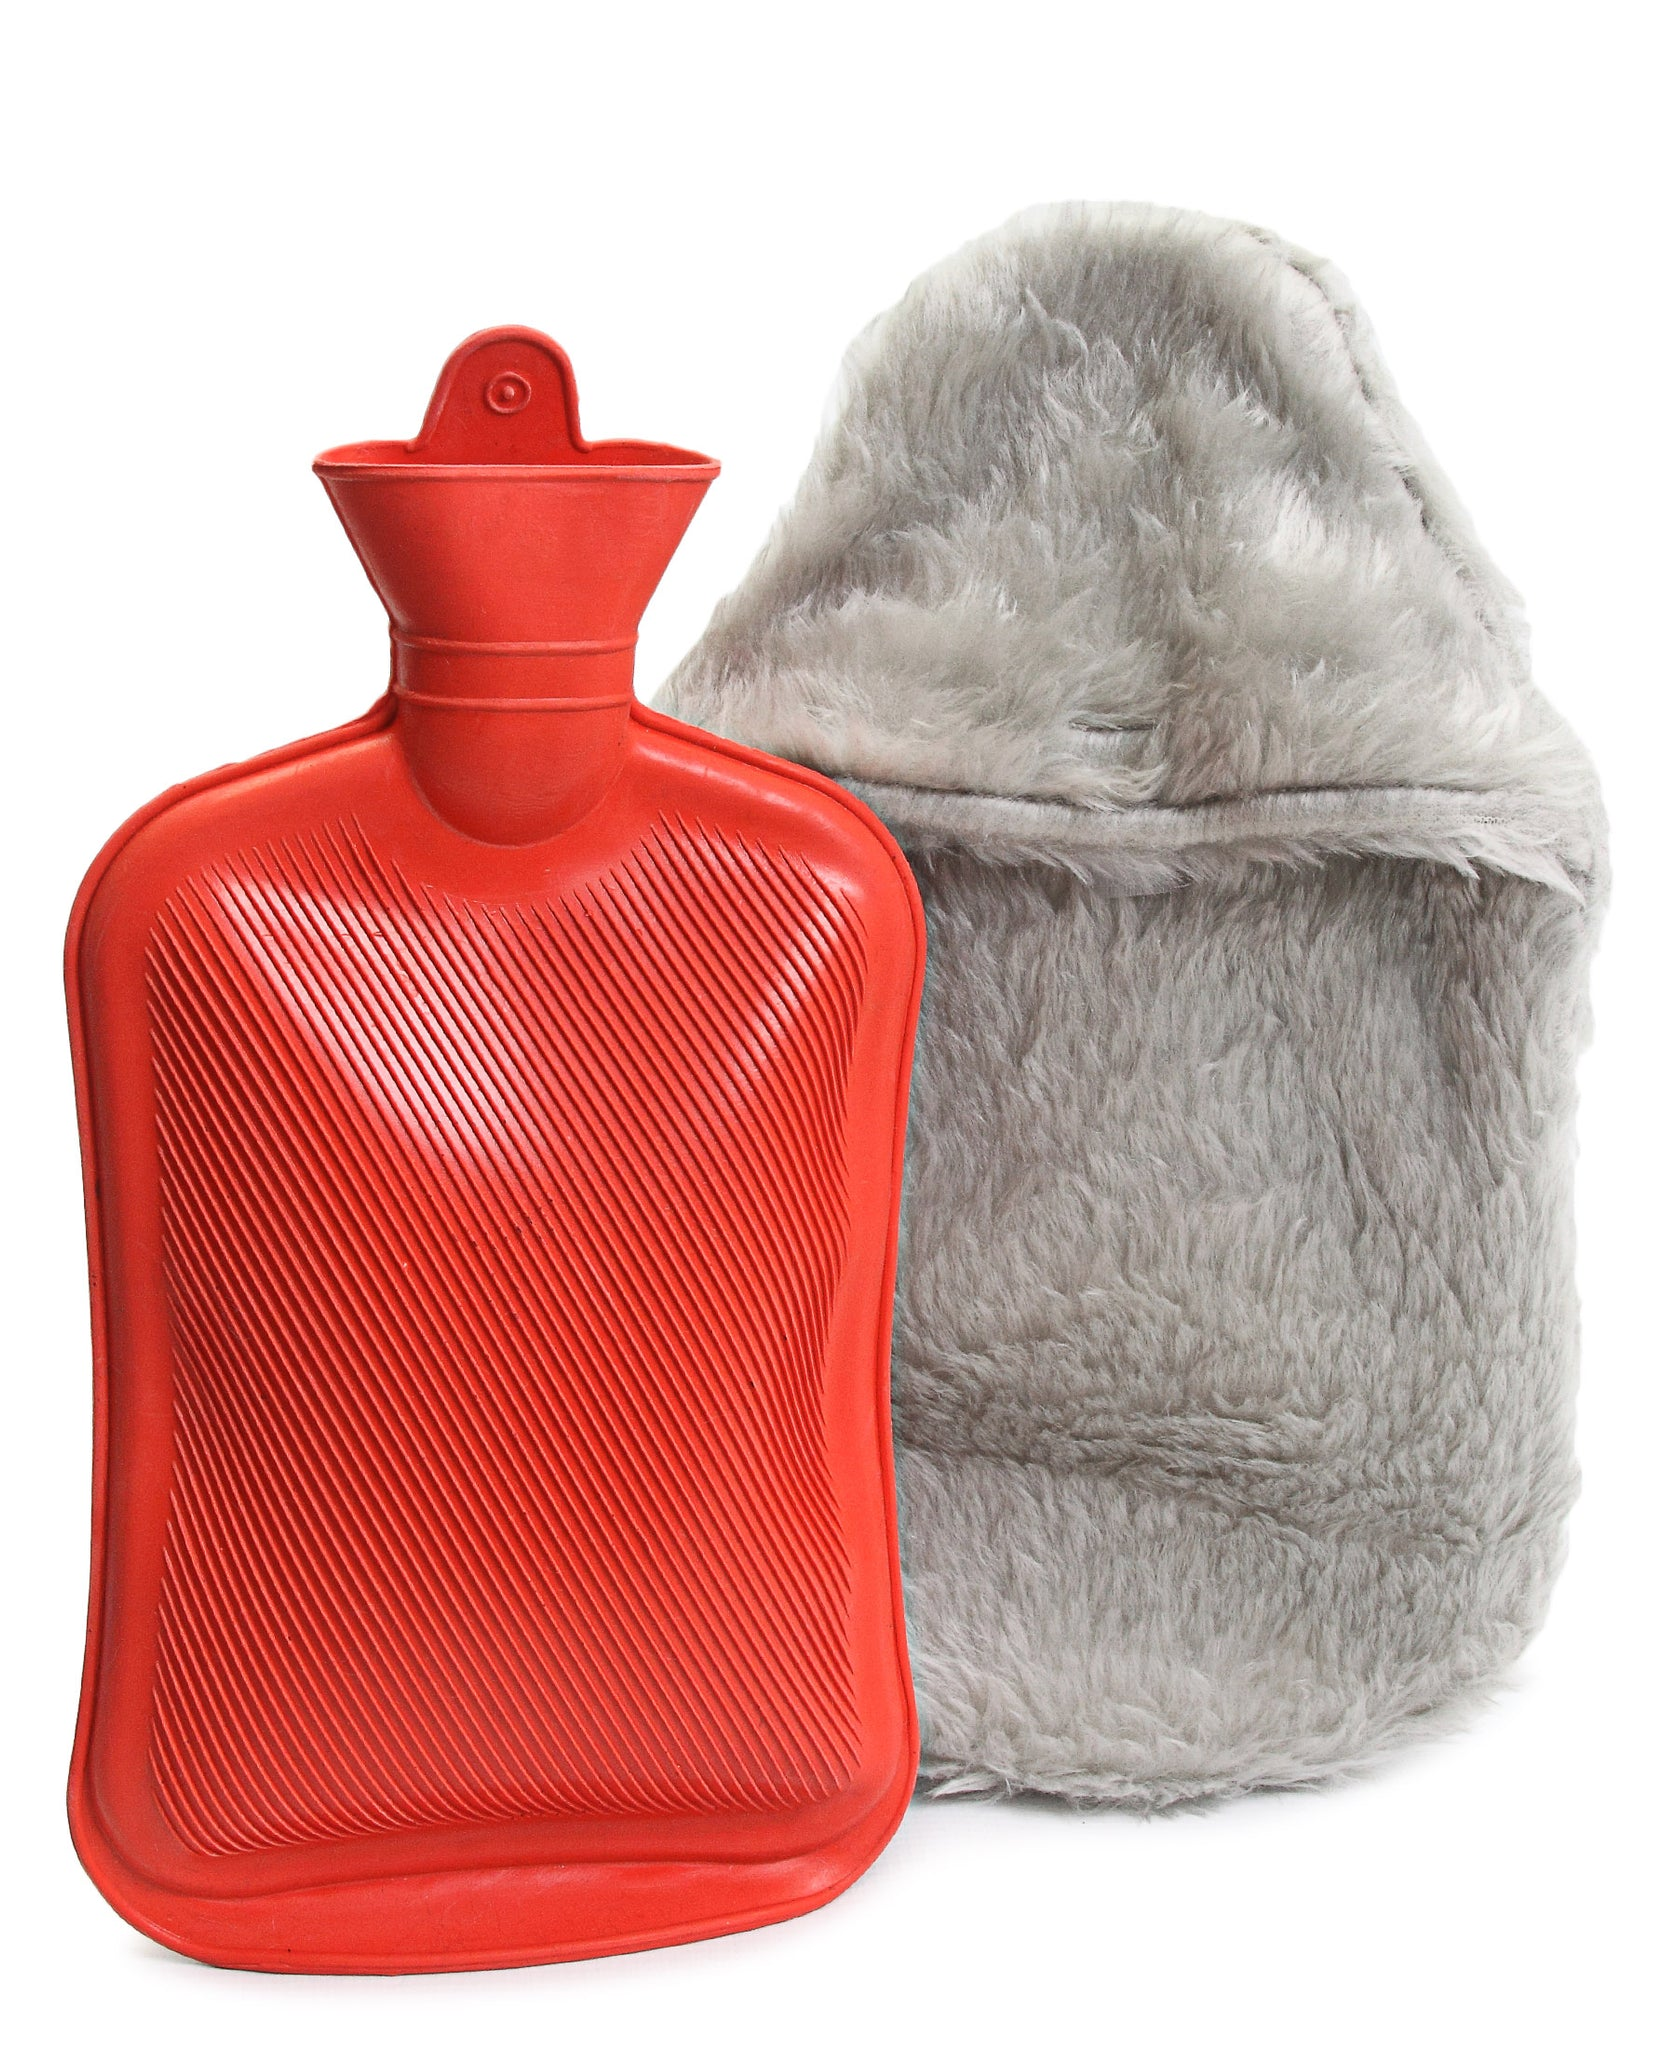 Hot Water Bottle With Cover - Light Grey